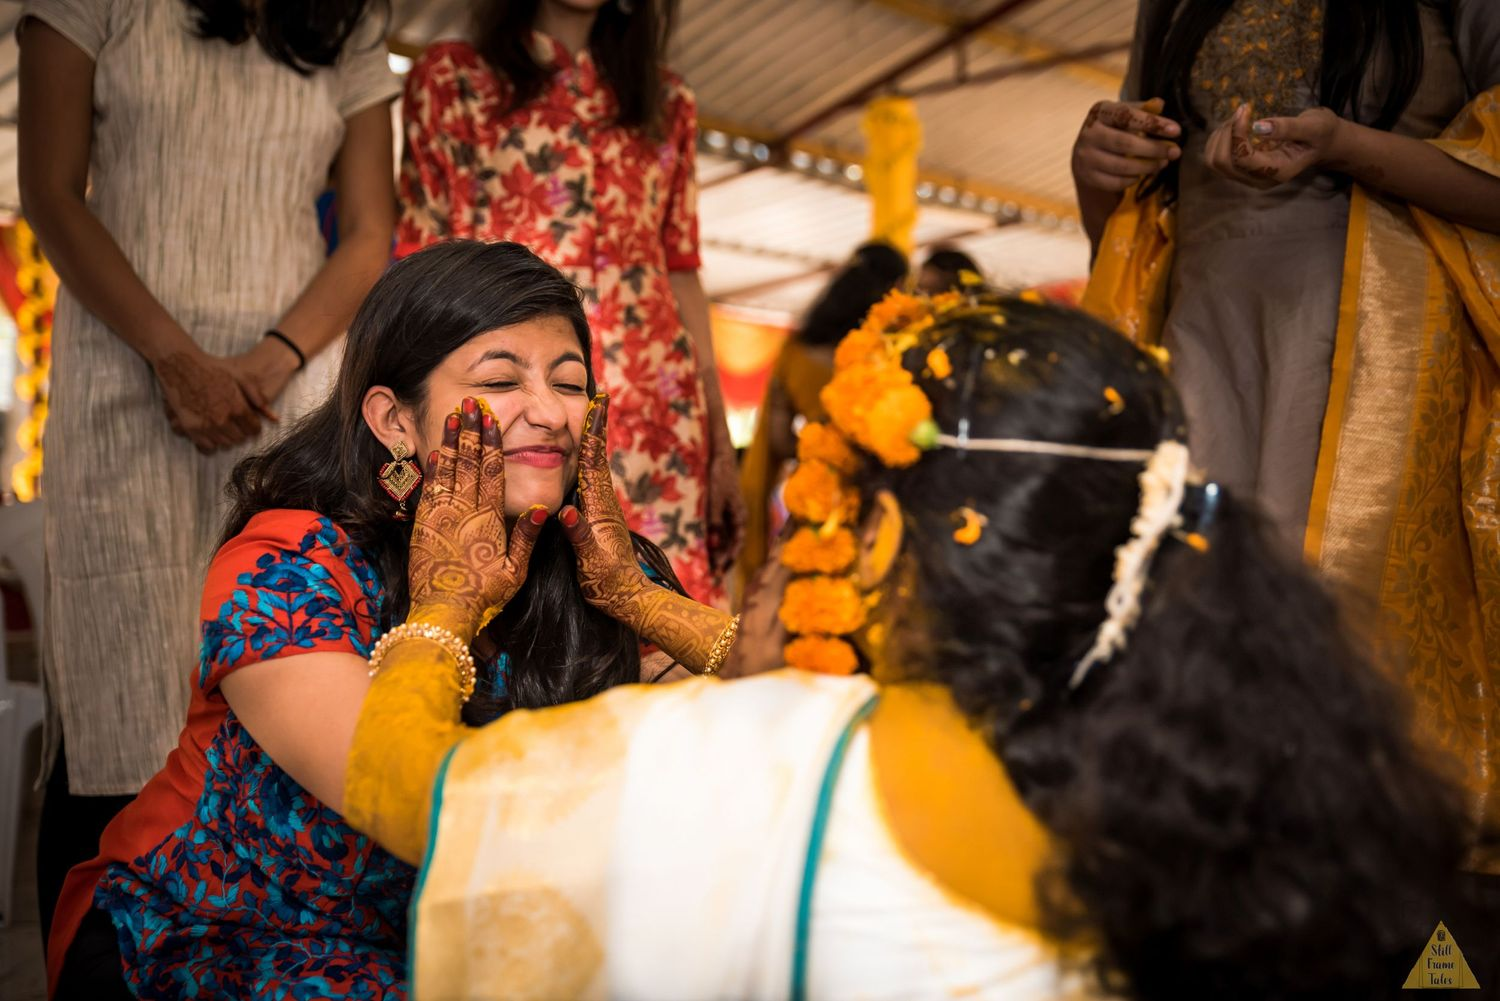 Bride and her best friend putting haldi on each others face at a destination wedding ceremony